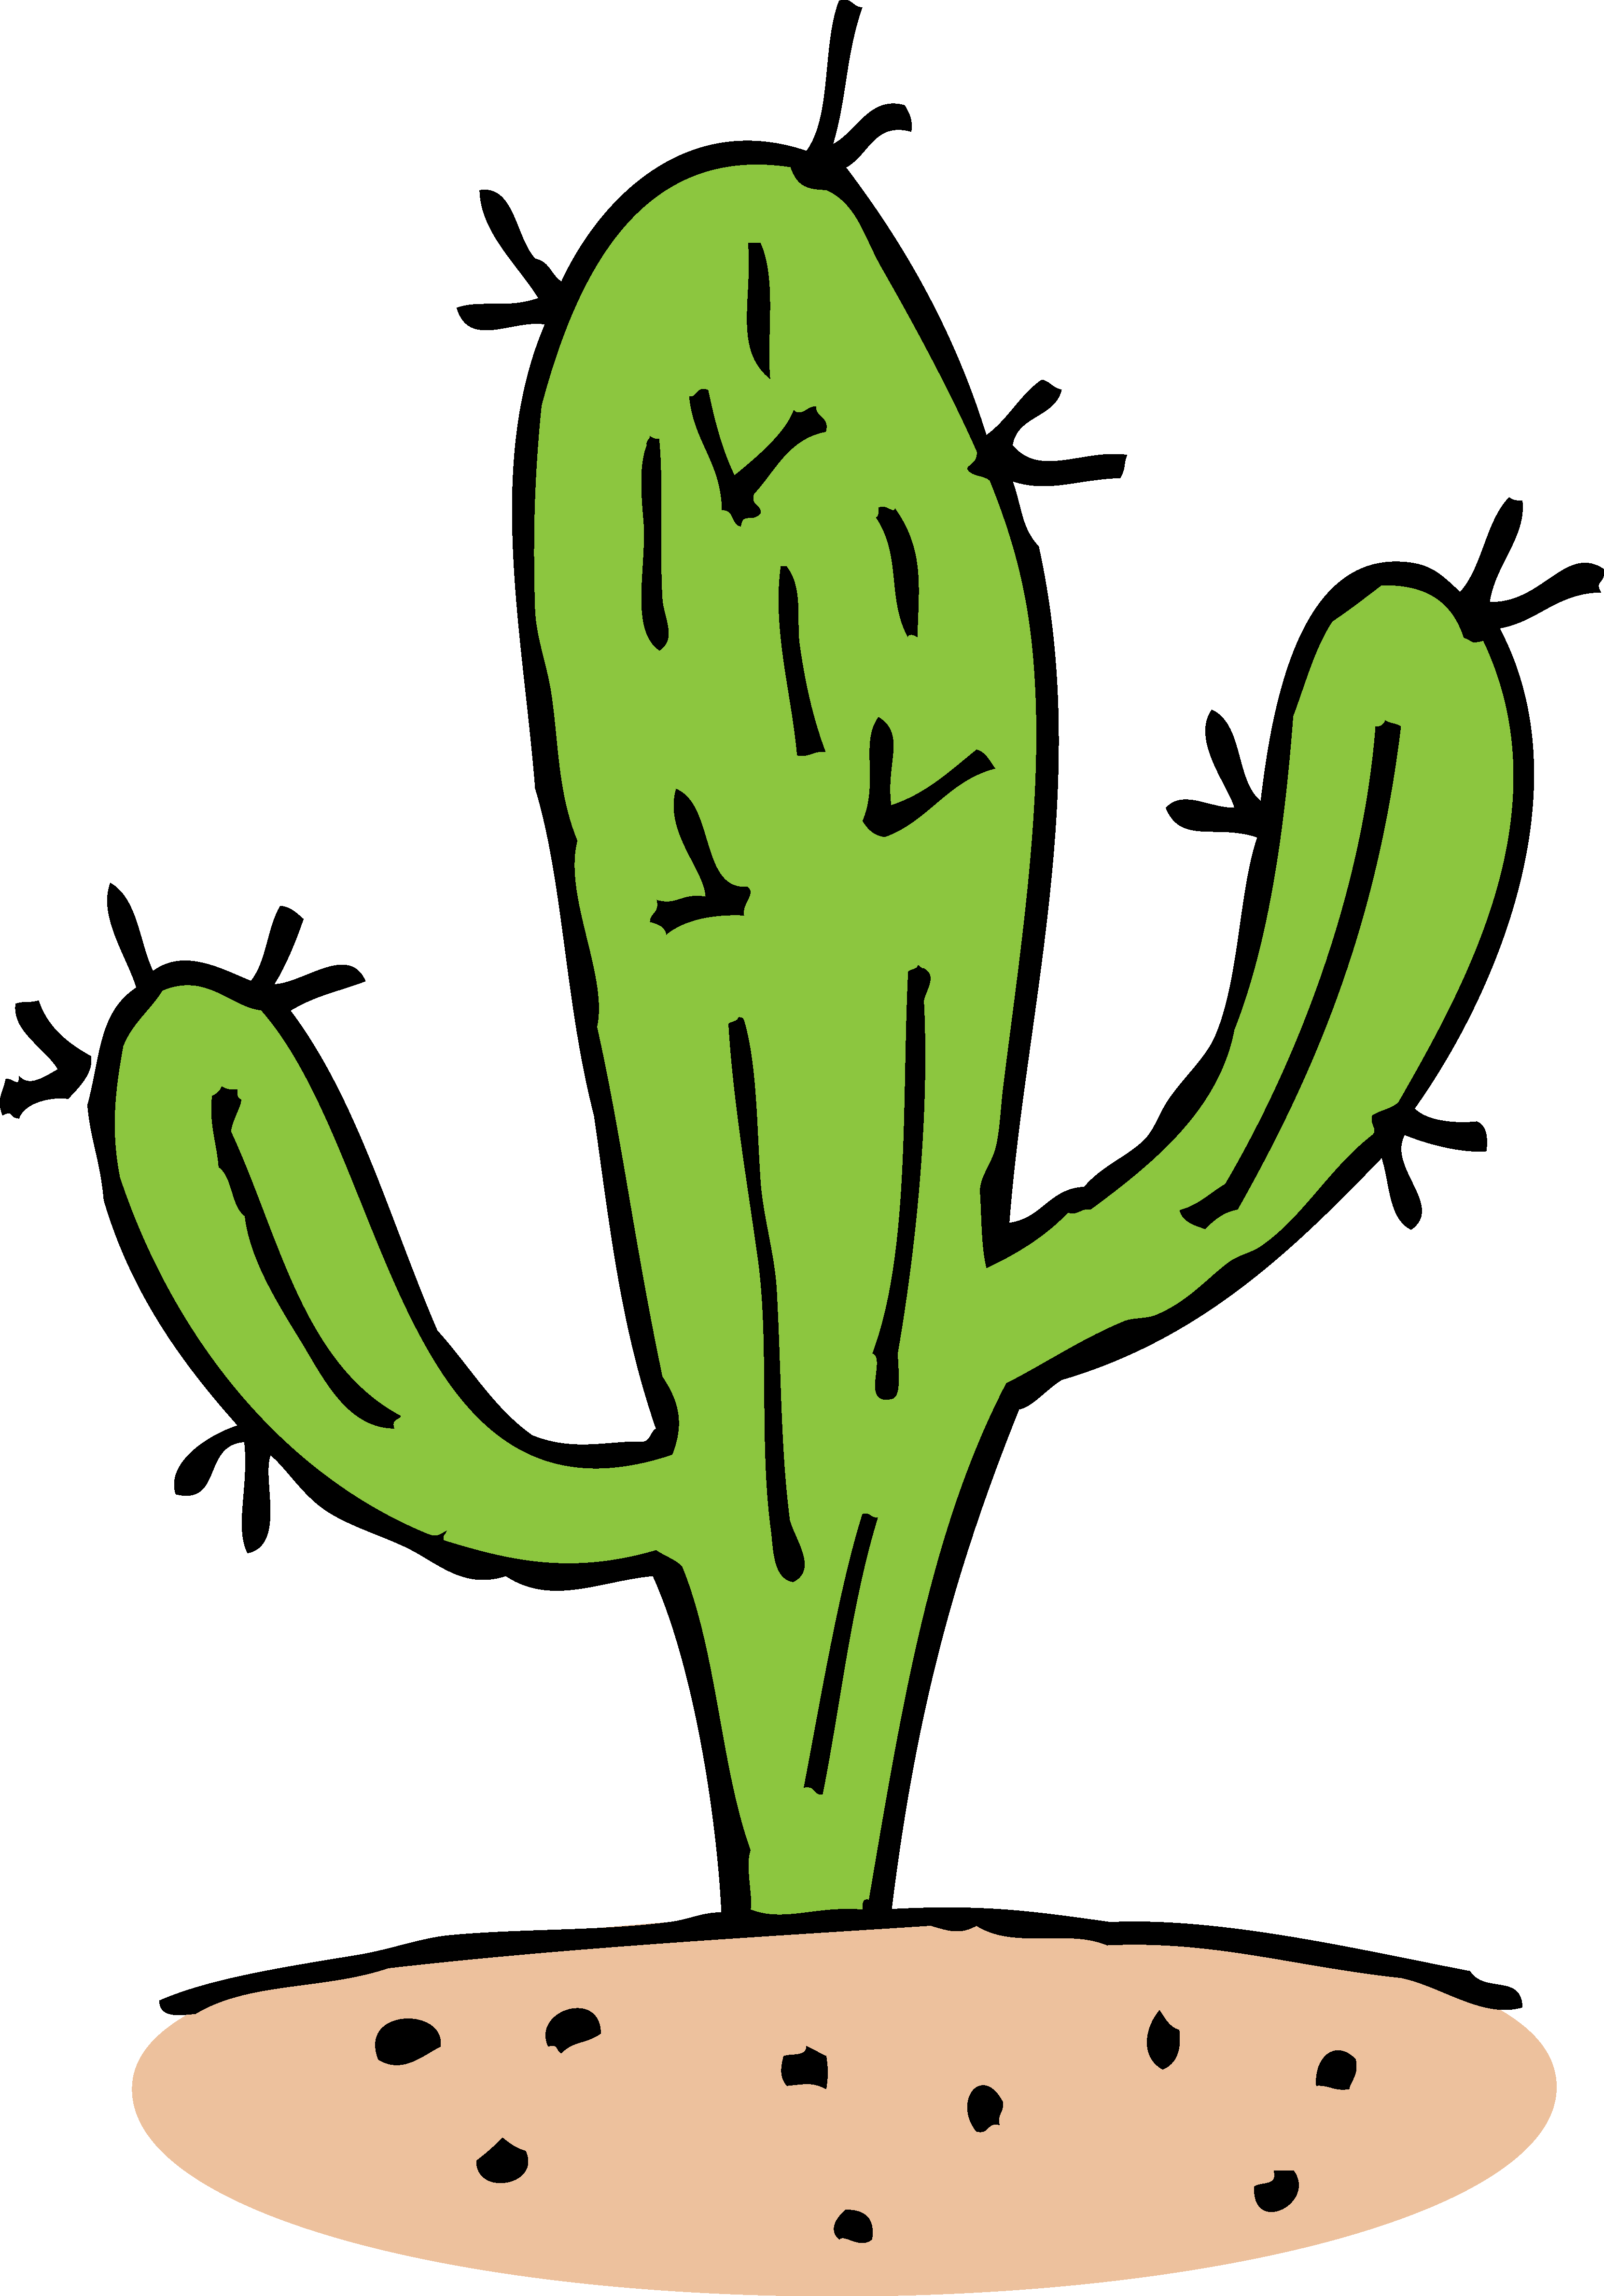 Cactus clipart #1, Download drawings